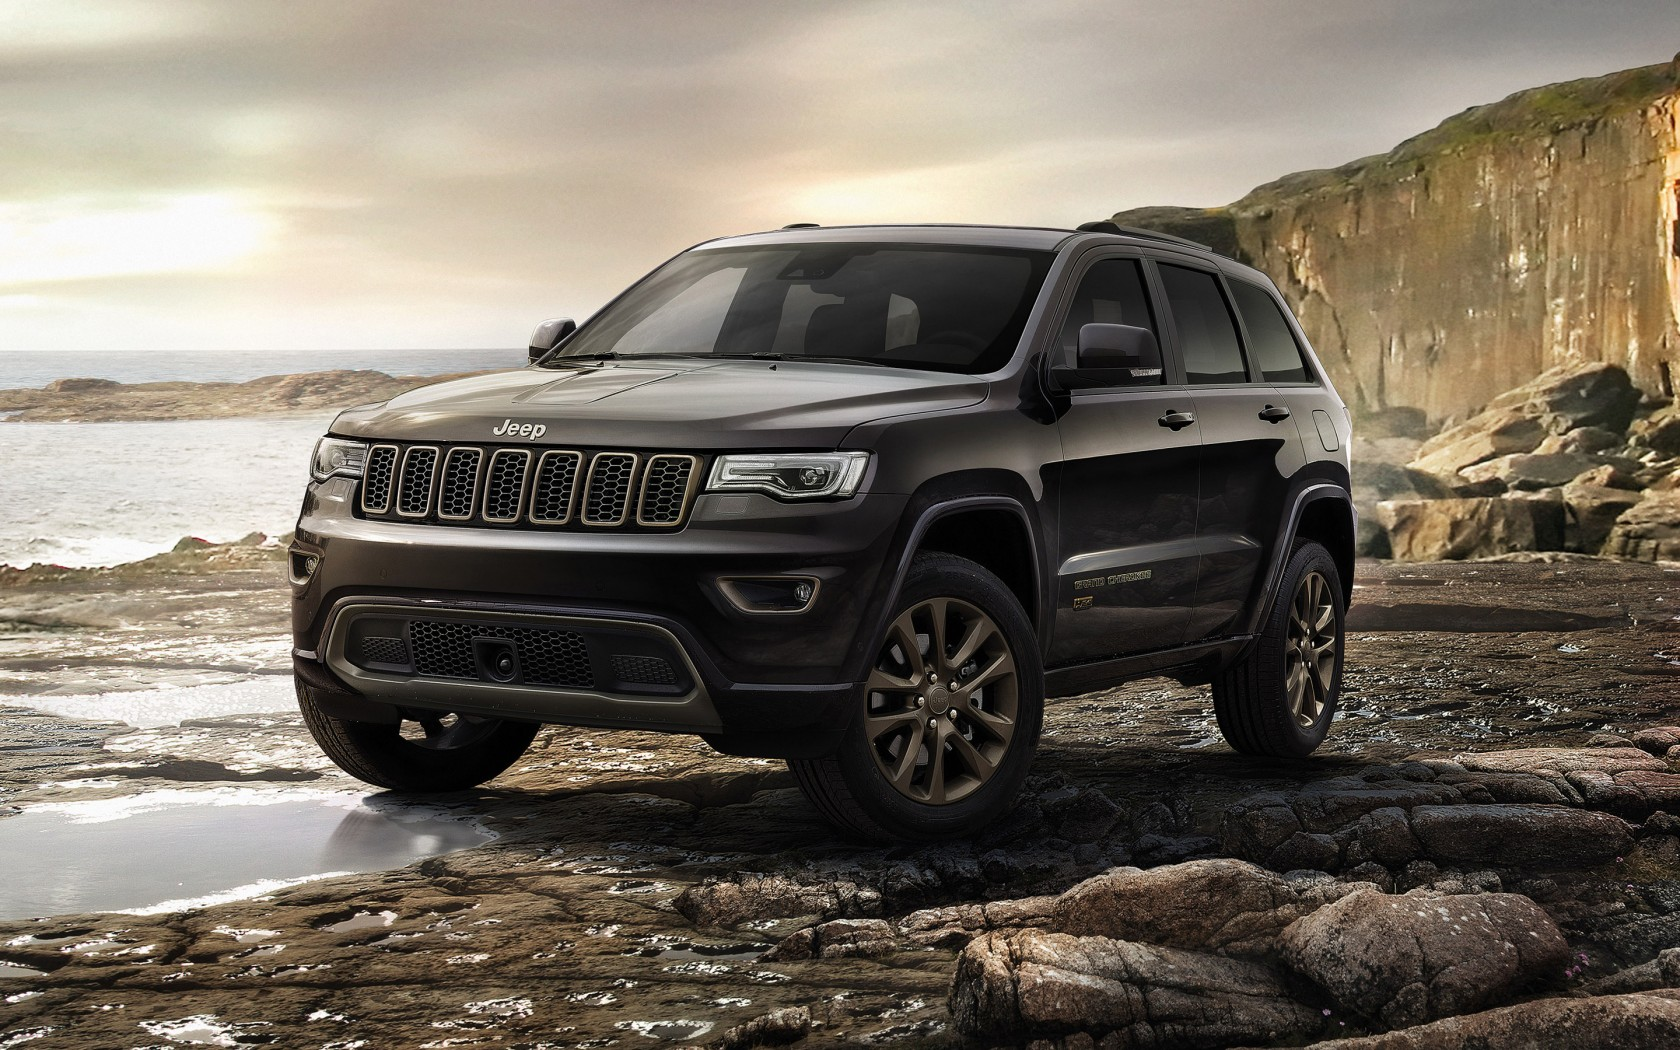 2016 jeep grand cherokee 75th anniversary wallpaper hd car wallpapers id 6420. Black Bedroom Furniture Sets. Home Design Ideas